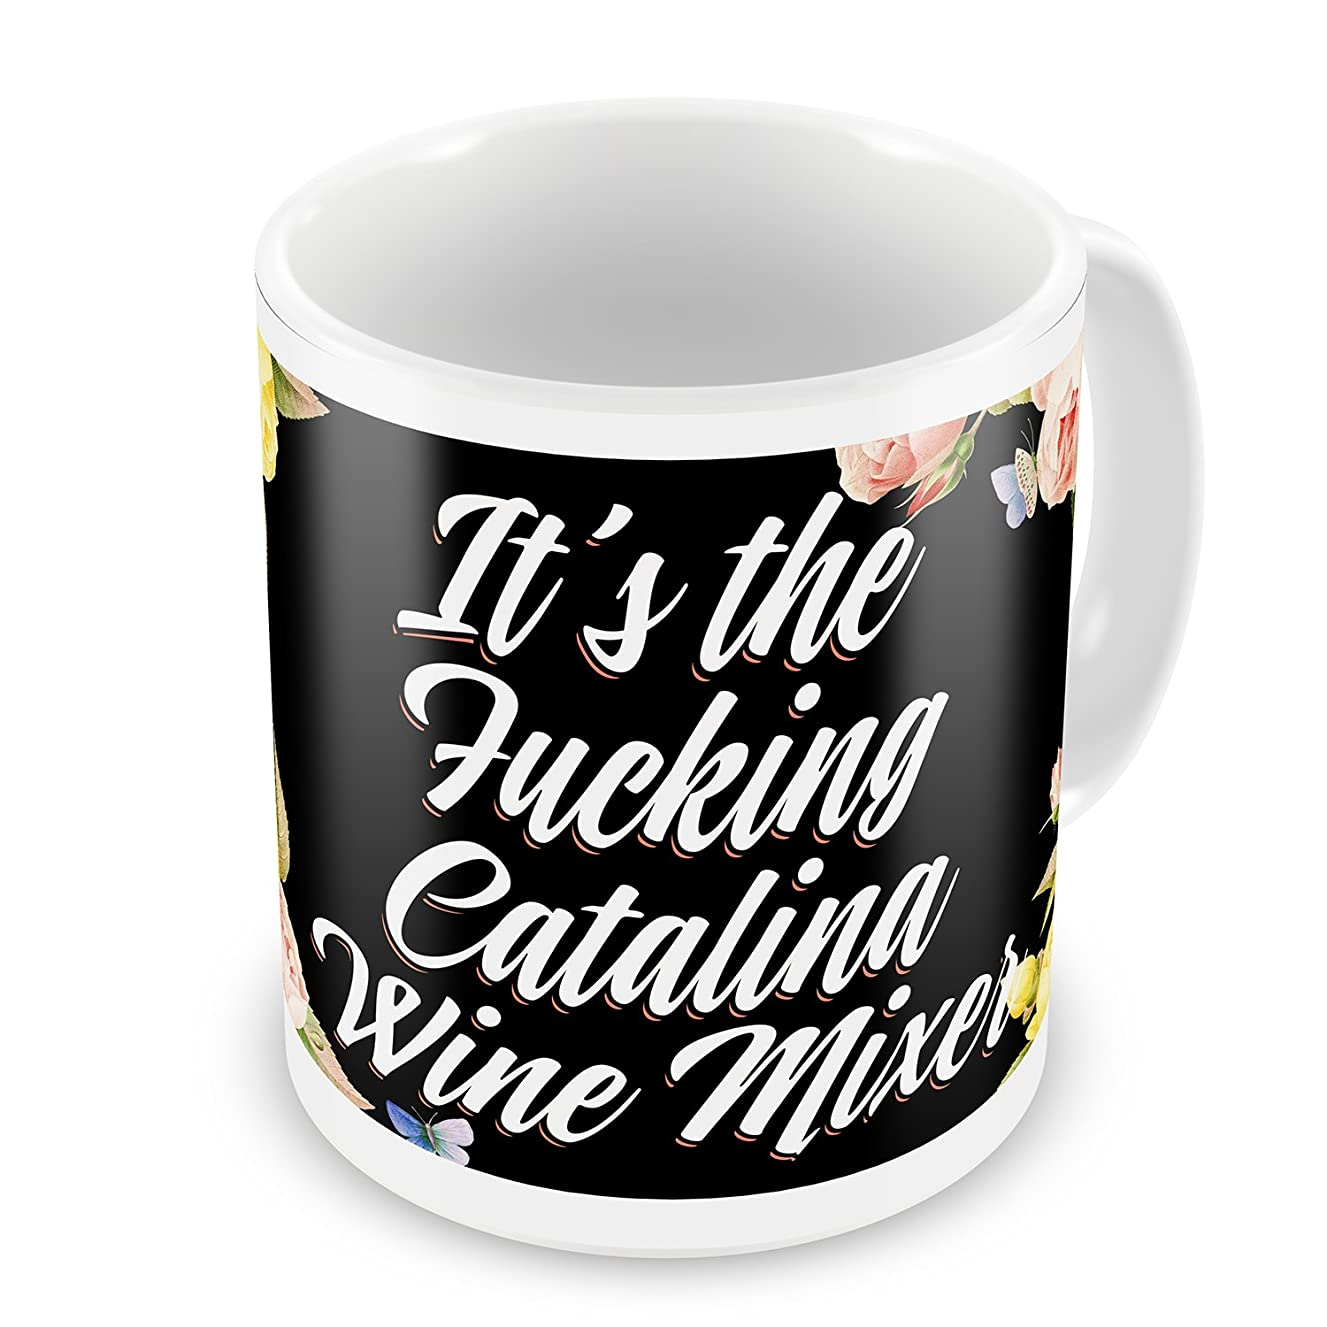 Coffee Mug Floral Border It's the Fucking Catalina Wine Mixer - NEONBLOND